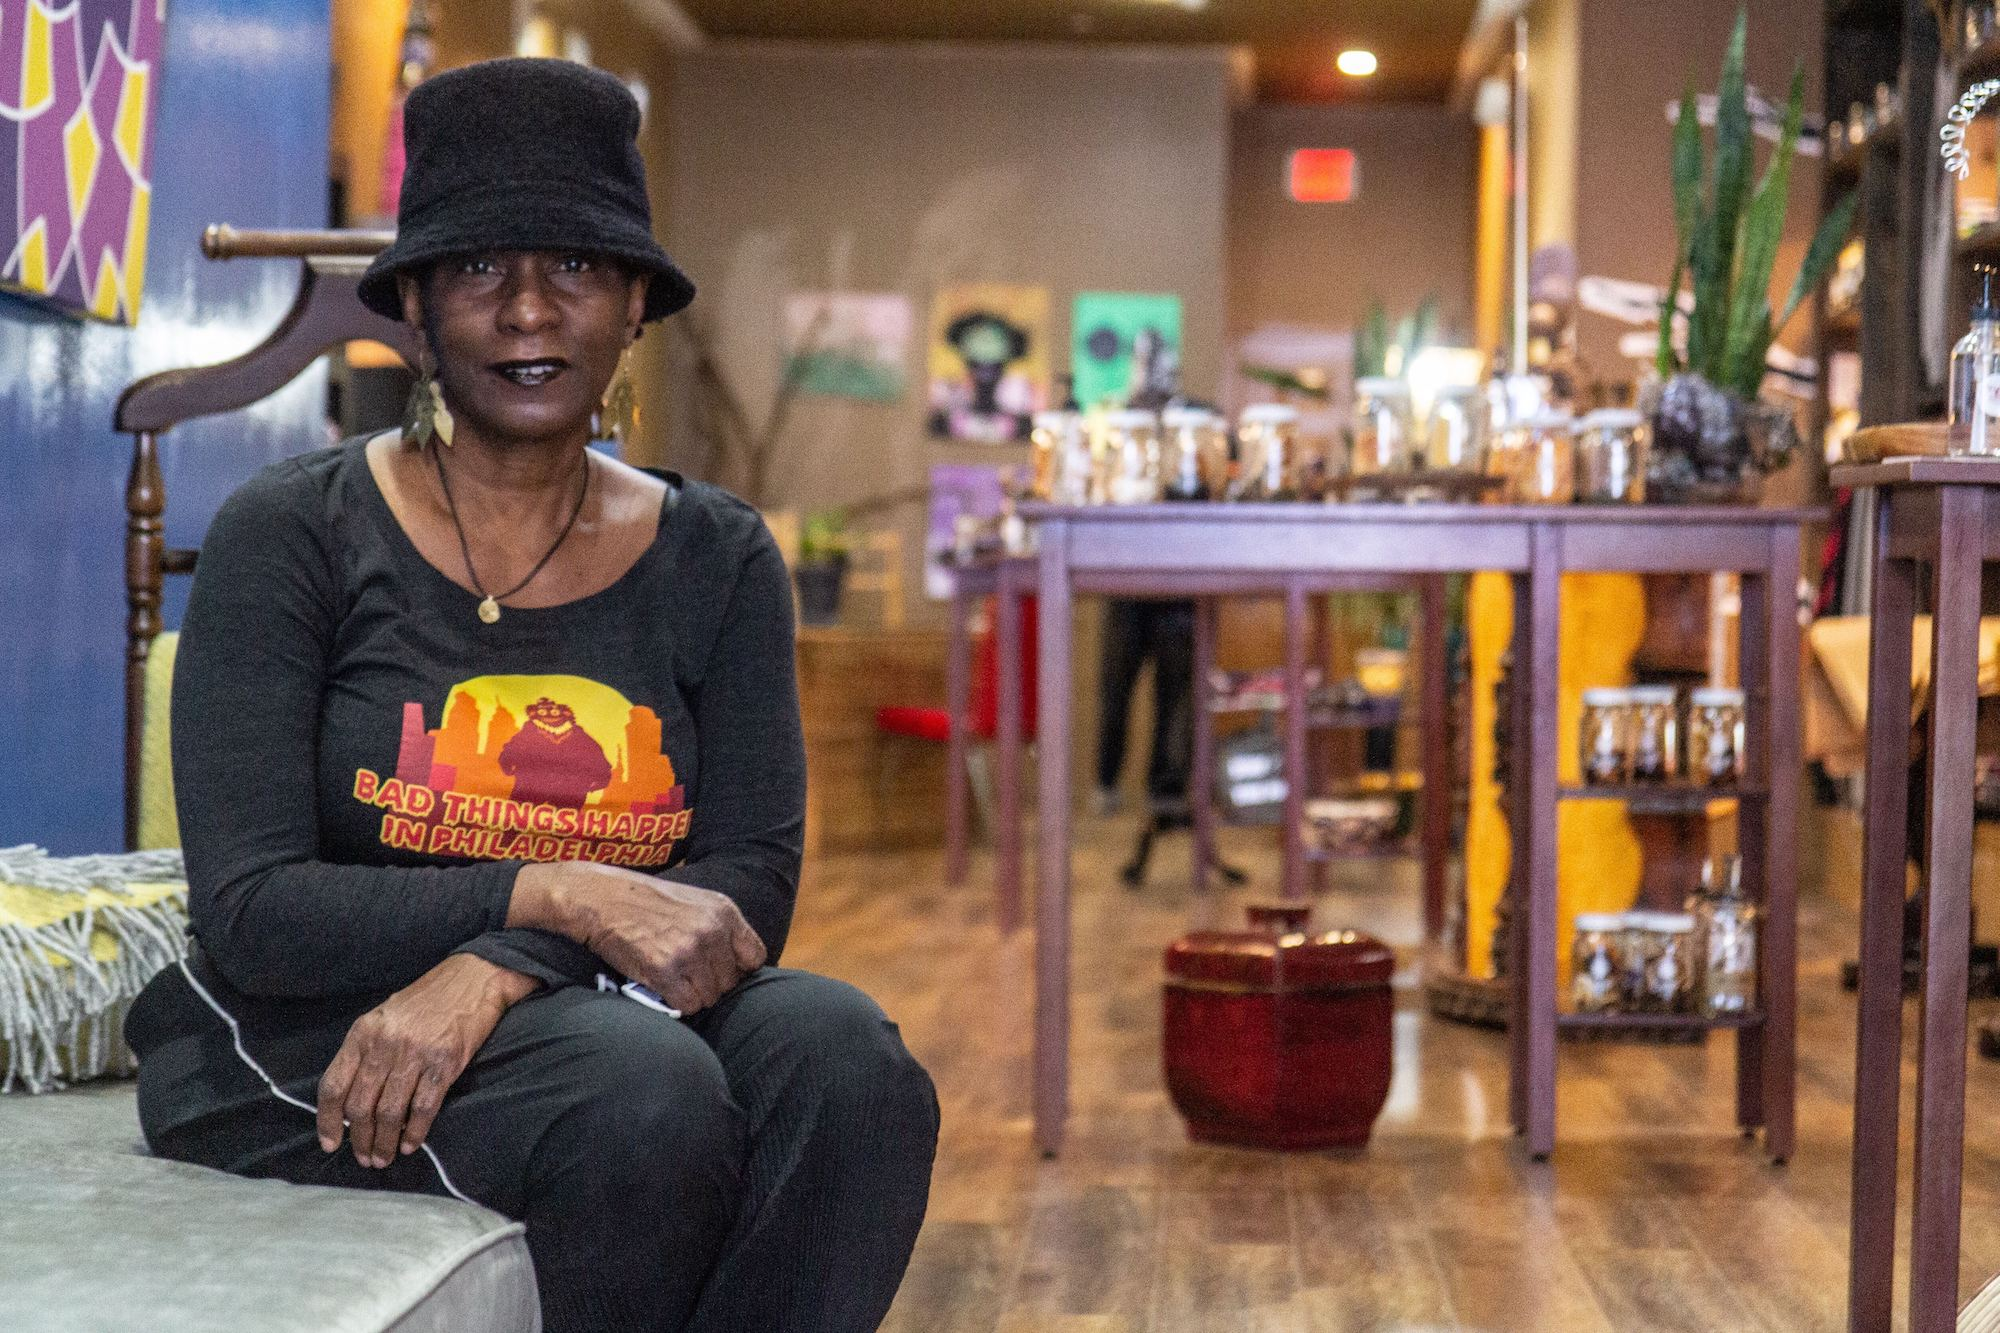 Philly's conscious shopping trend has Black-owned businesses optimistic about holiday sales